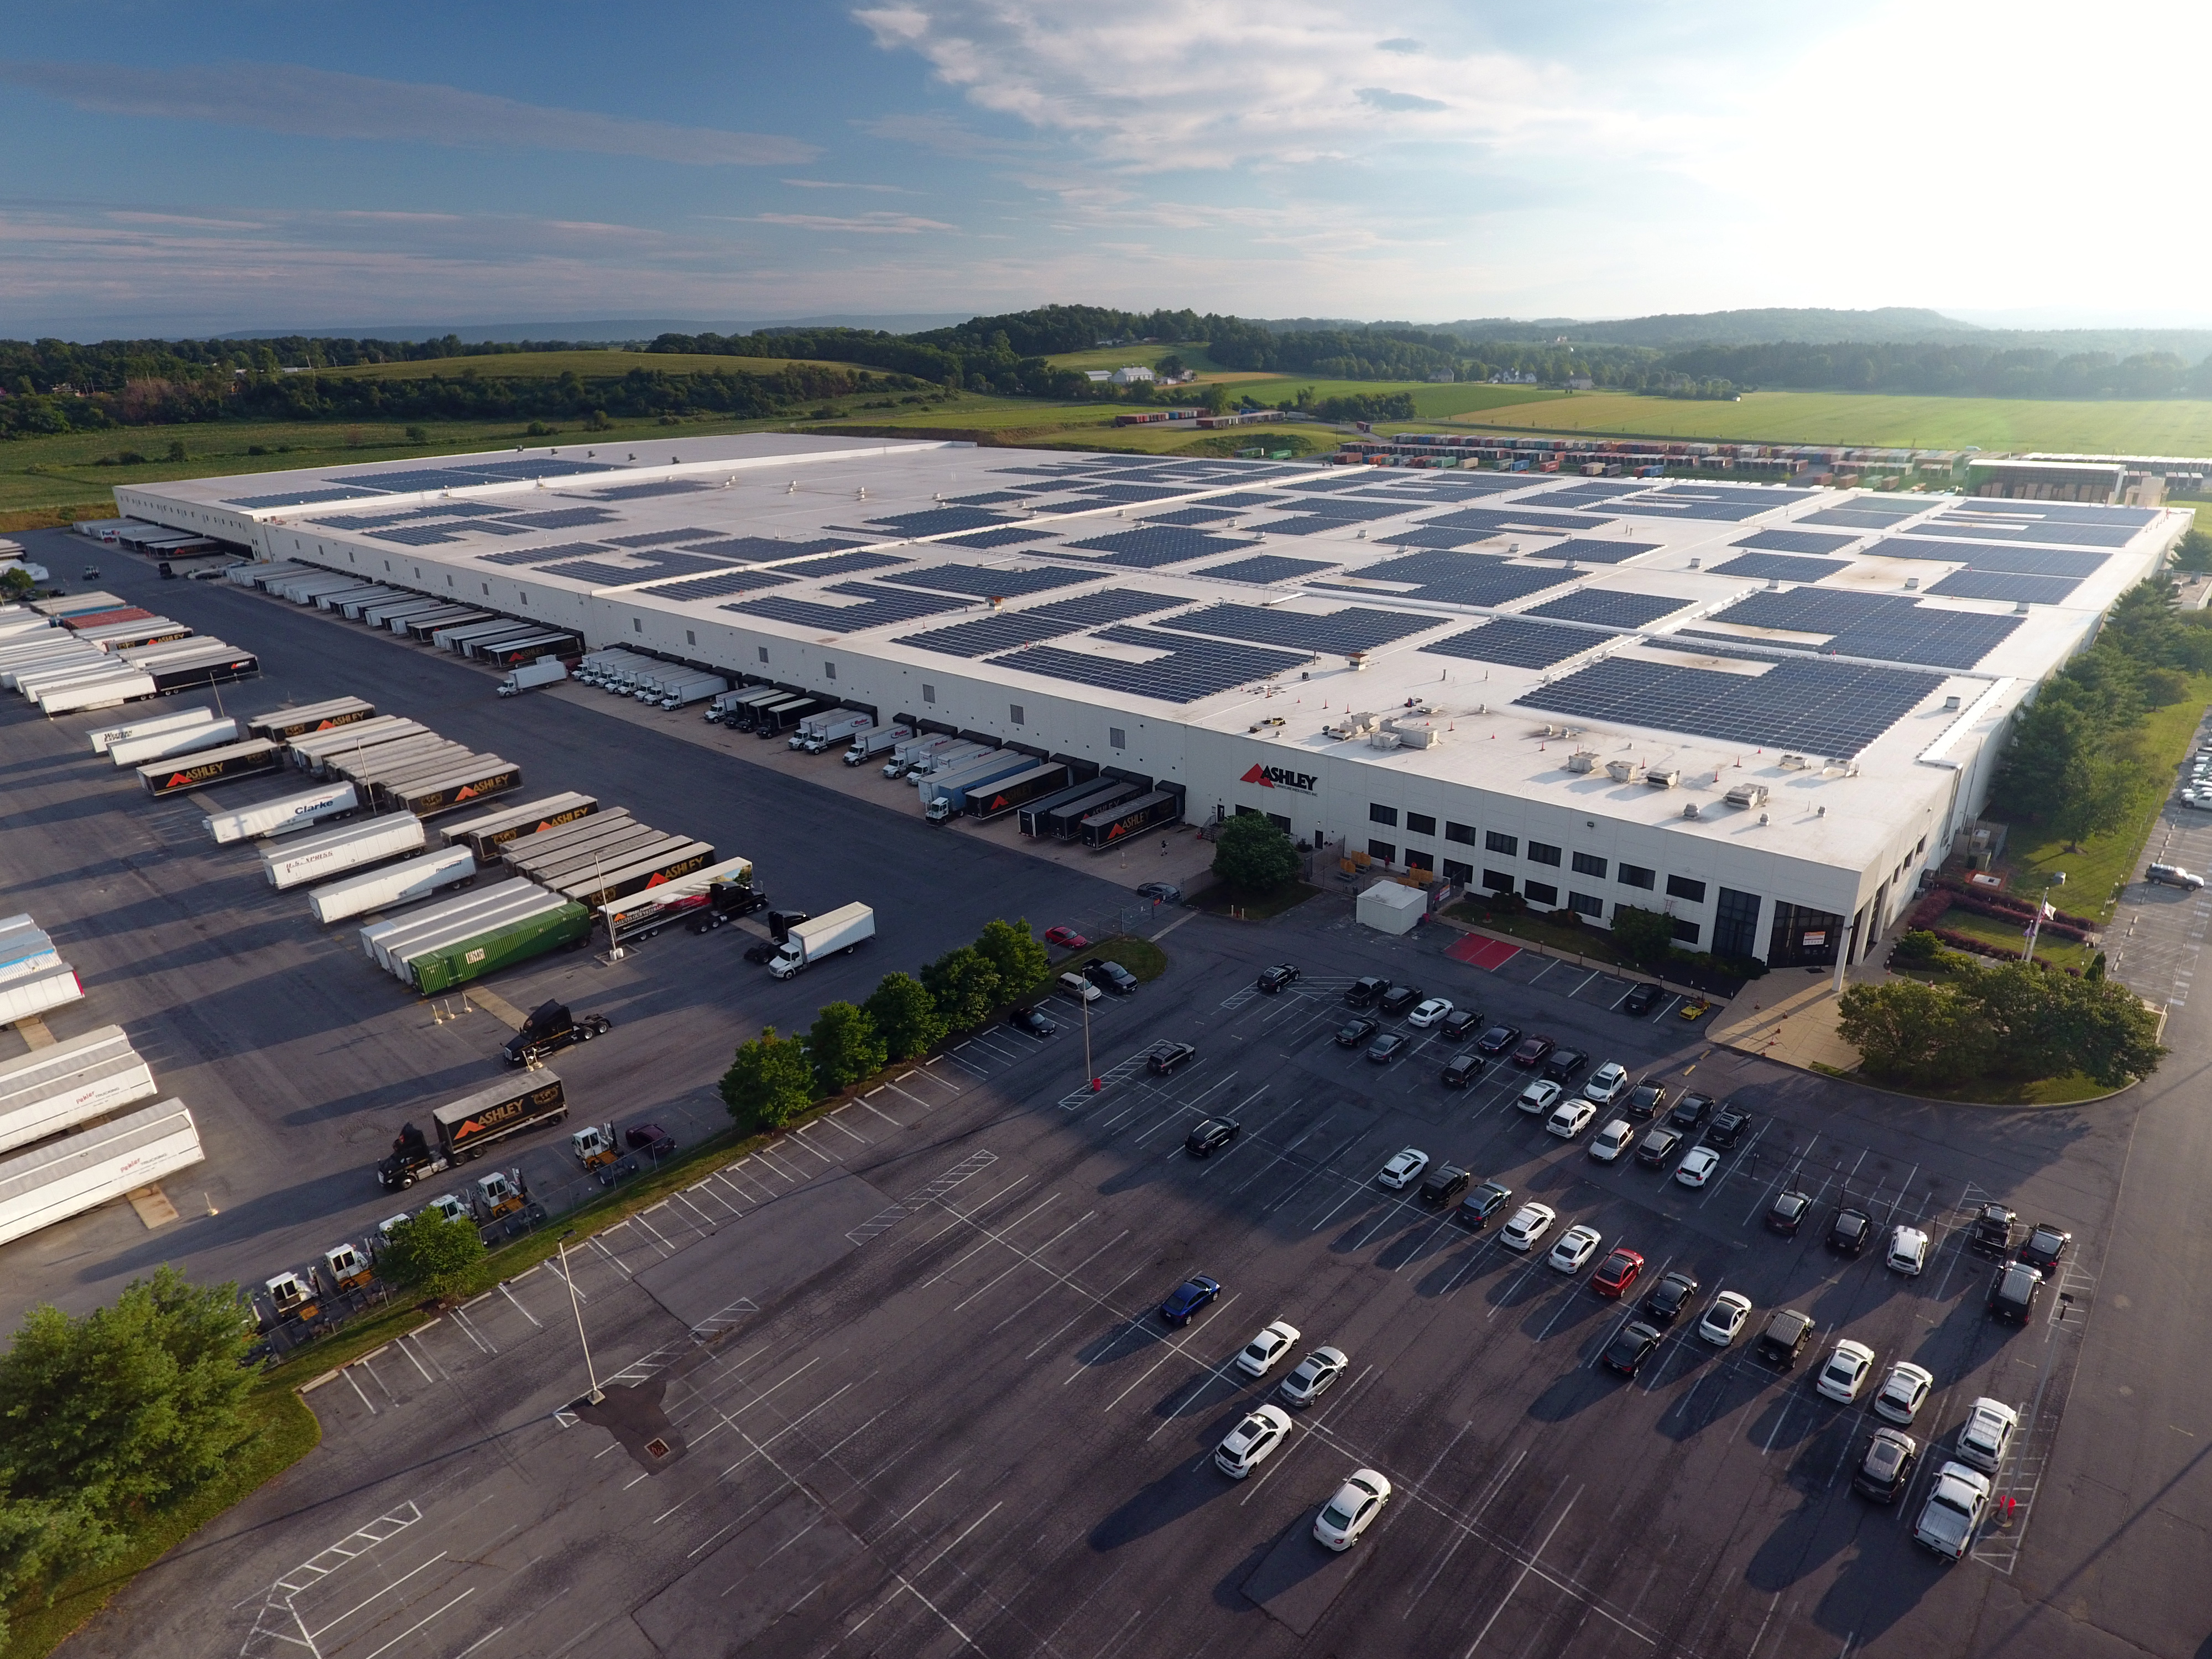 Rooftop solar panels help power Ashley Furniture DC in PA